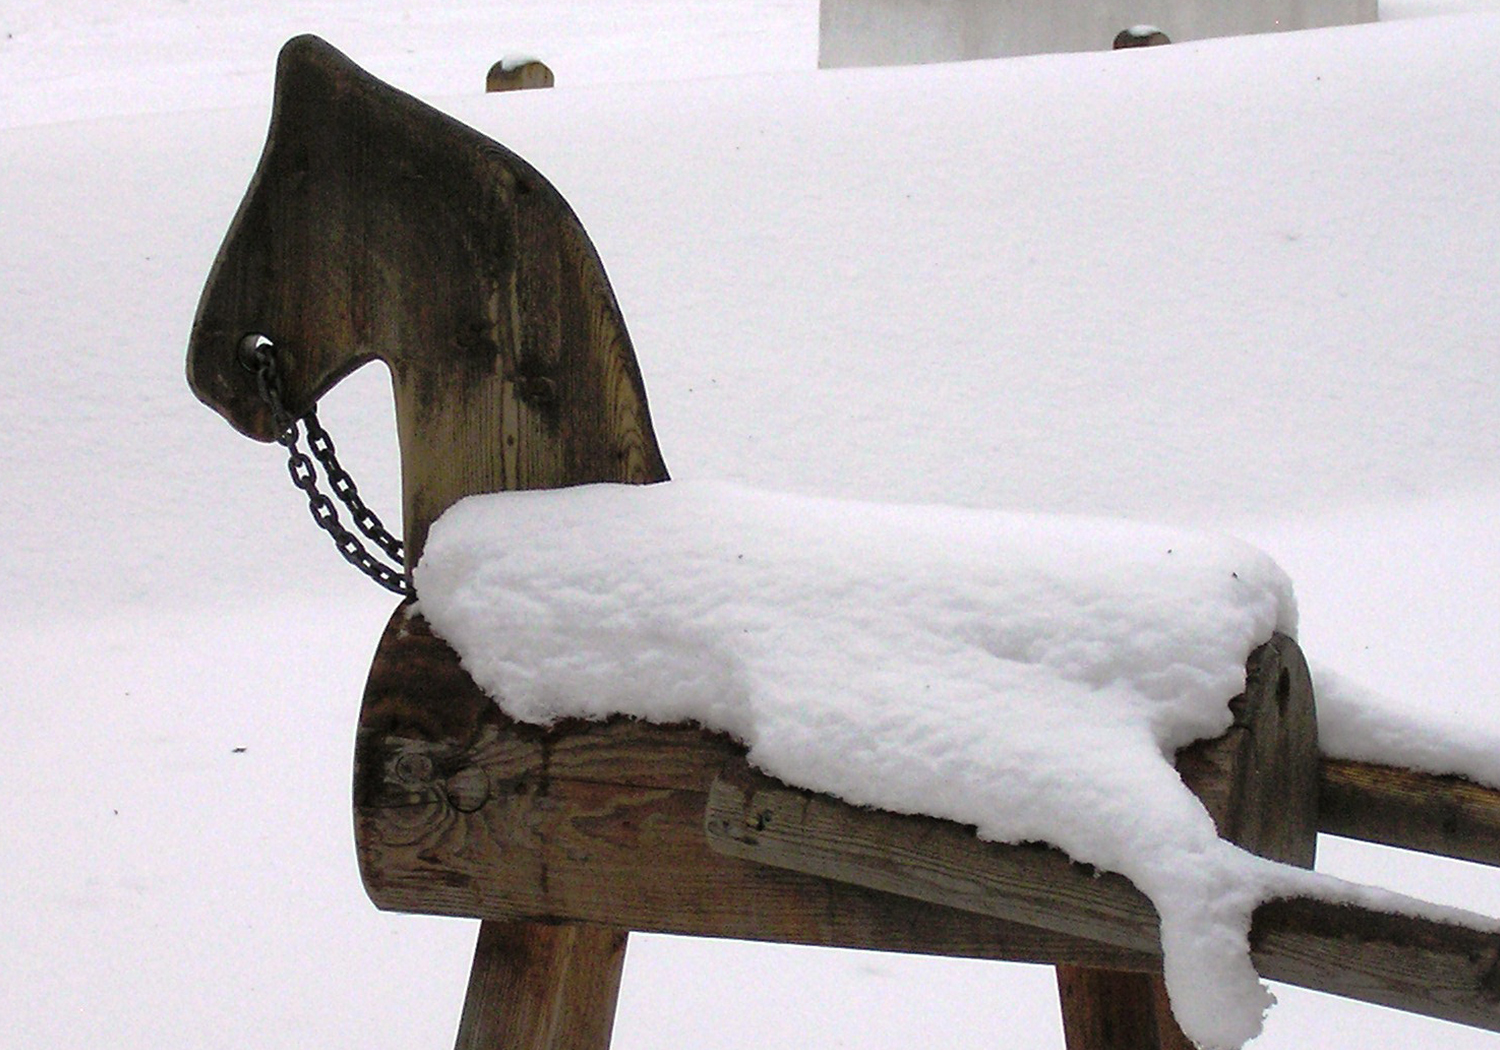 Projects-ParksPublicRealm-StockwoodPark-SnowHorse-1500x1050